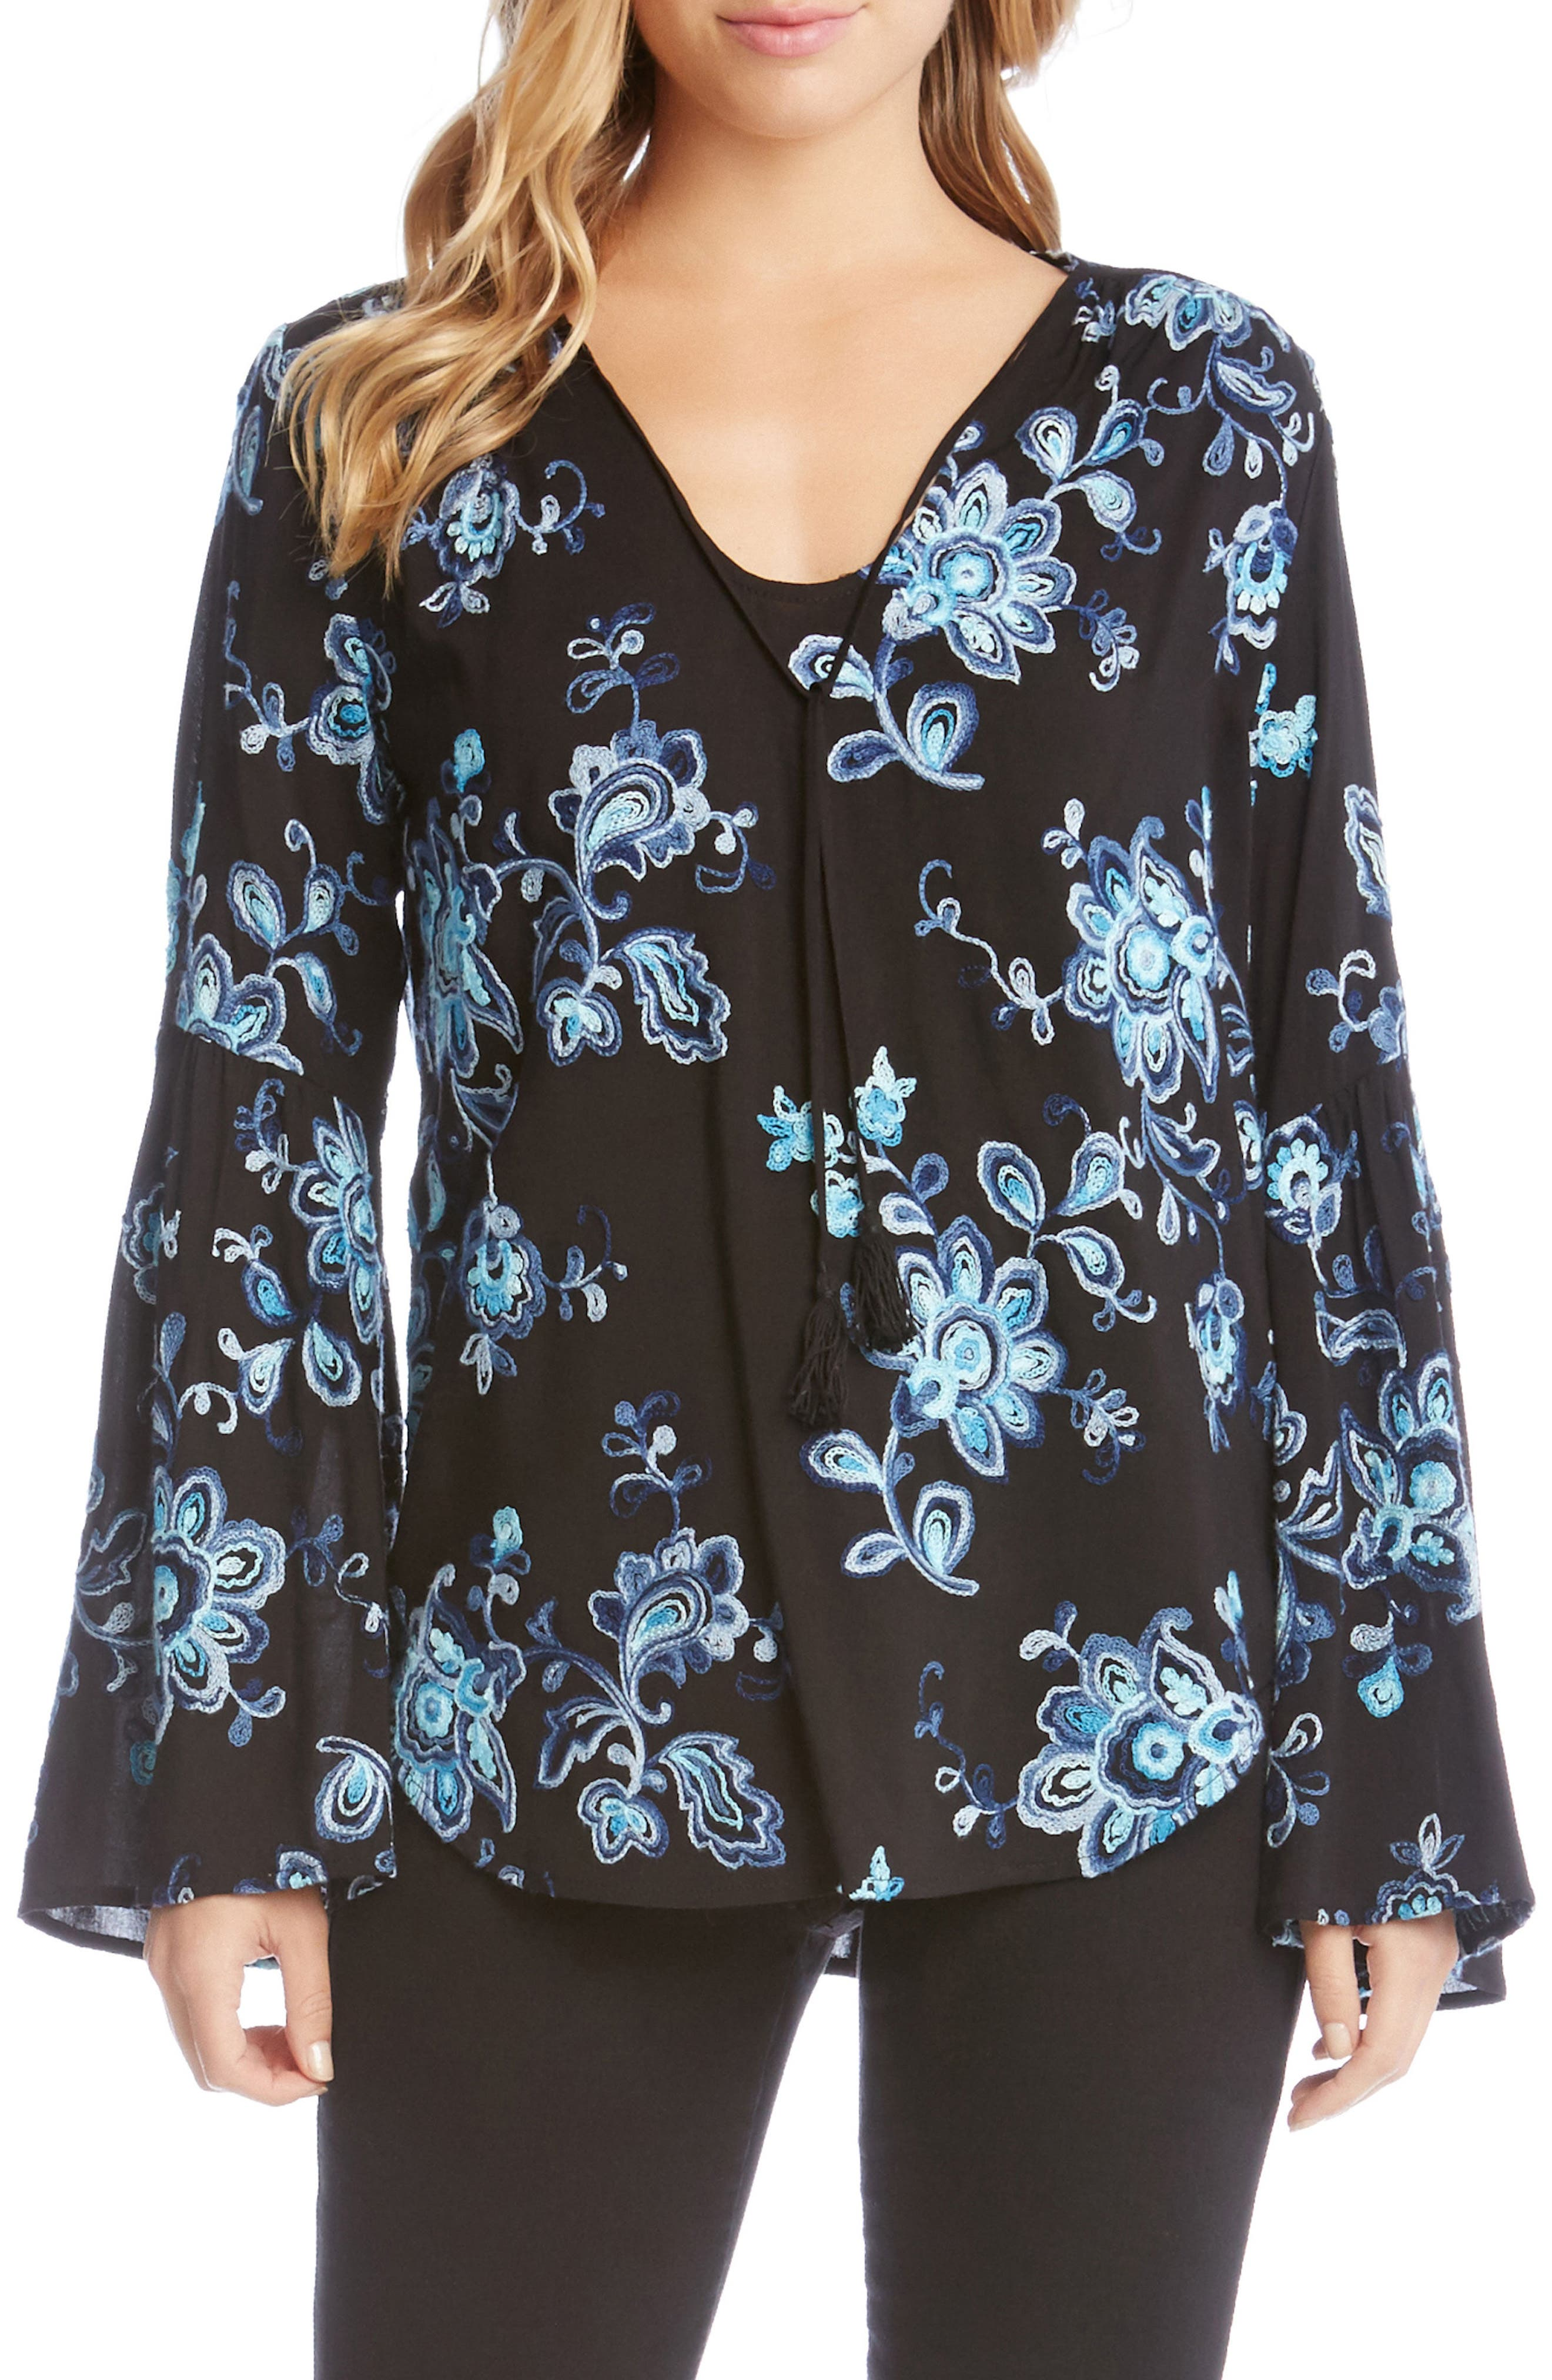 KAREN KANE Floral Embroidery Bell Sleeve Top